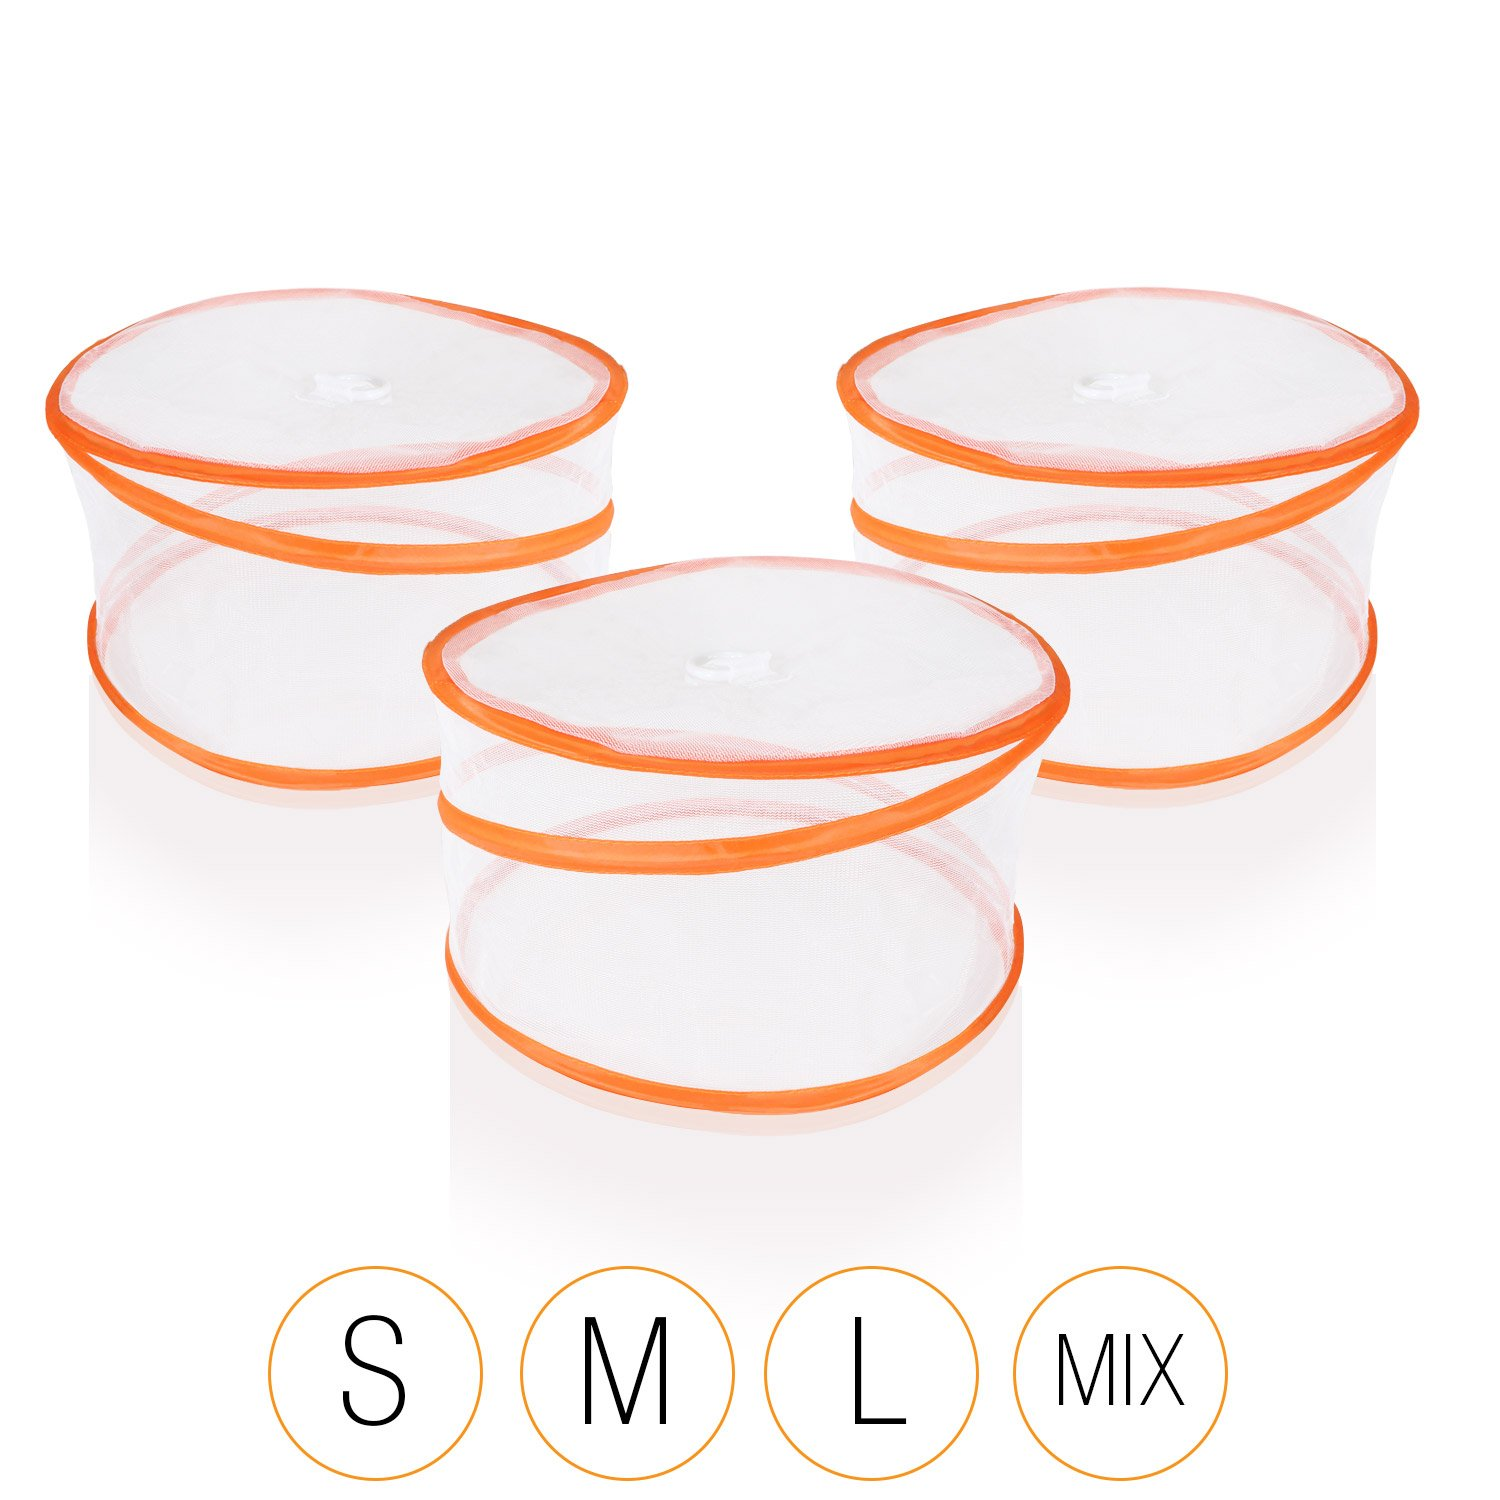 Amazy Collapsible Food Cover (Set of 3) - Protects Food And Drinks From Bugs (Small | Ø 30 cm, Orange)